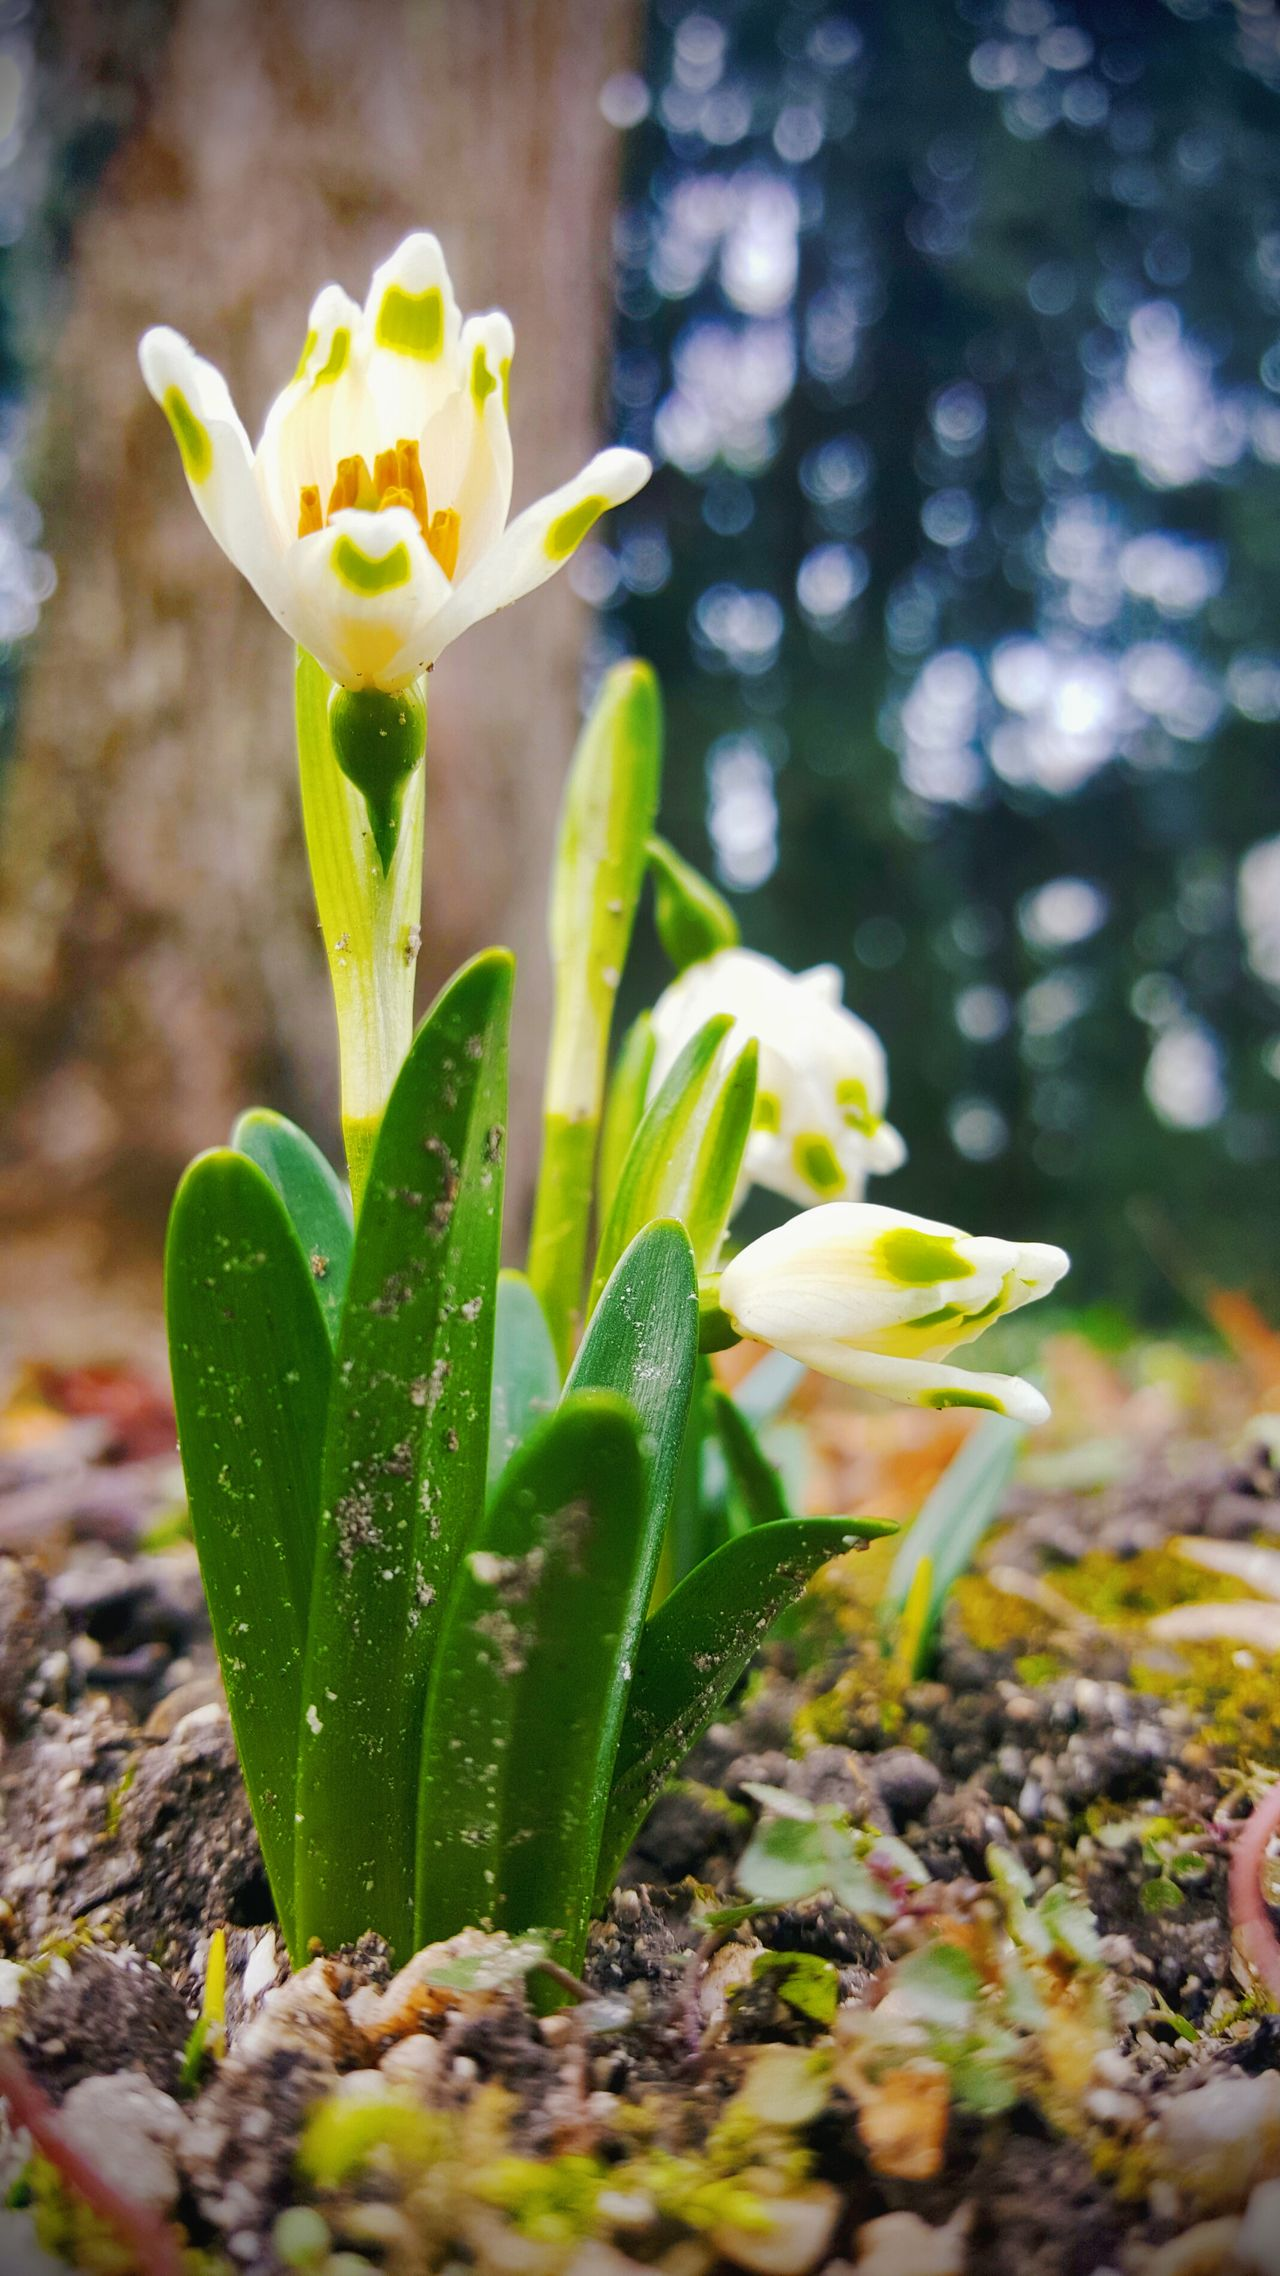 Growth Nature Plant Flower Beauty In Nature Fragility Focus On Foreground Close-up Leaf Green Color Freshness No People Flower Head Day Outdoors Leucojum Leucojum Vernum Märzenbecher Amaryllis